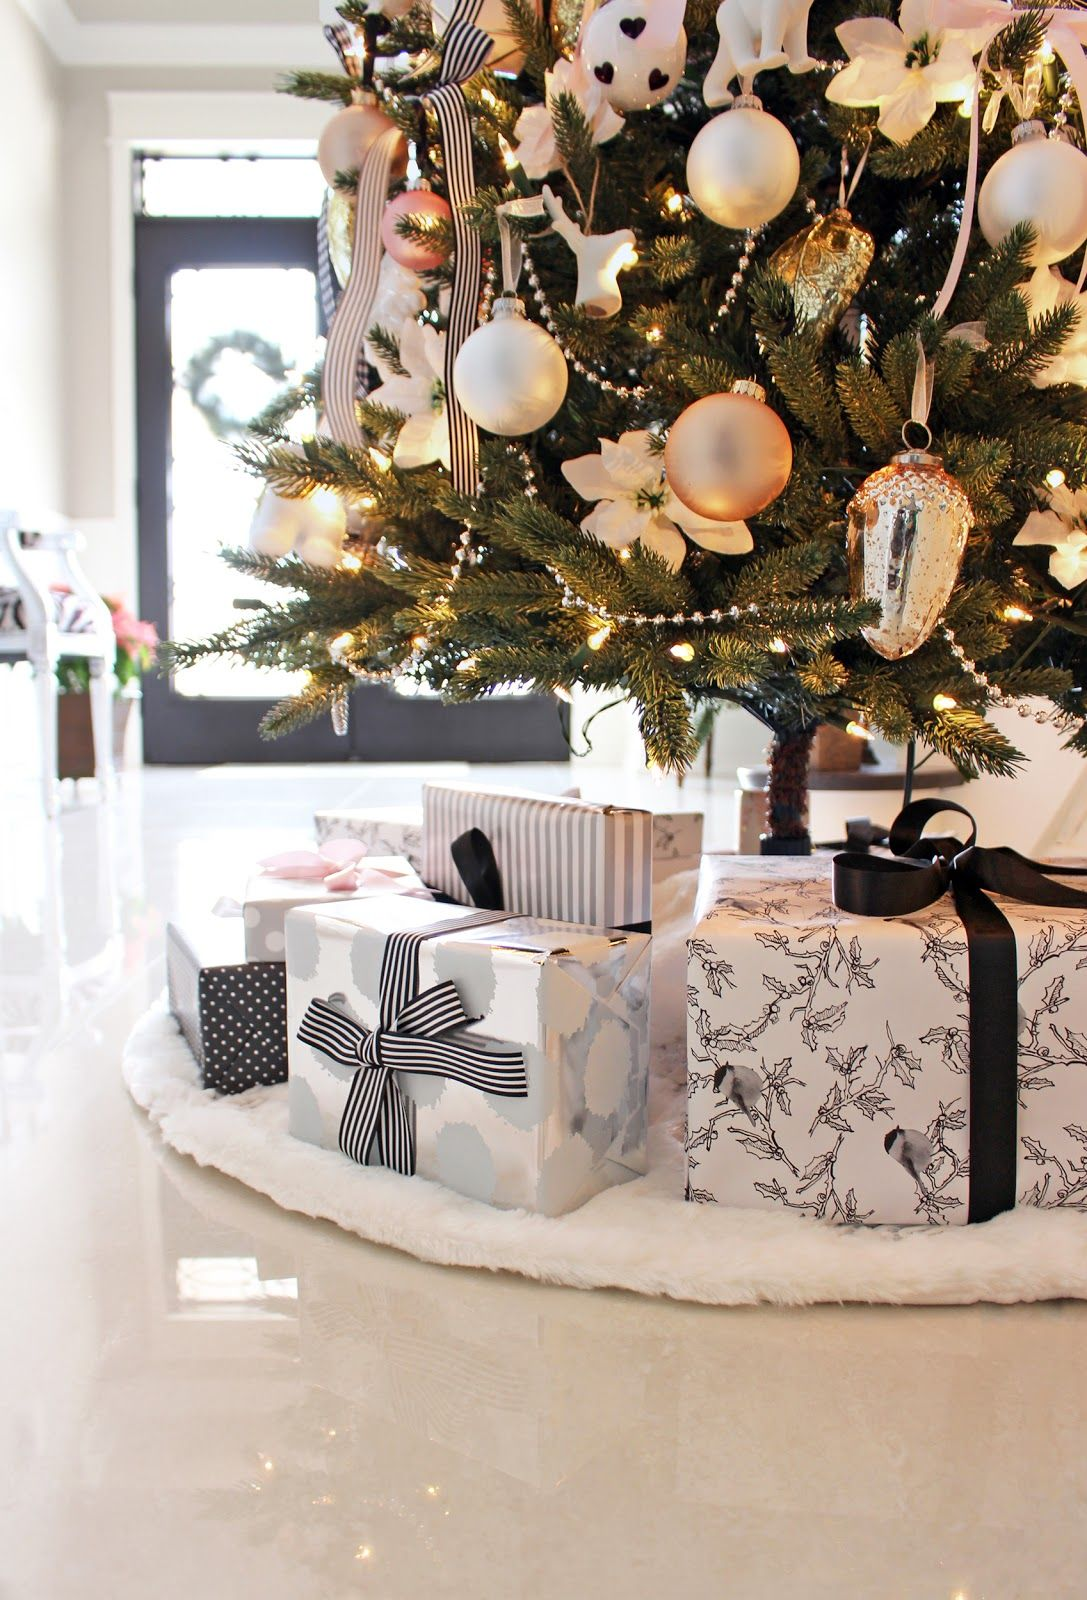 Pin by kathryn on christmas townhome pinterest elegant christmas